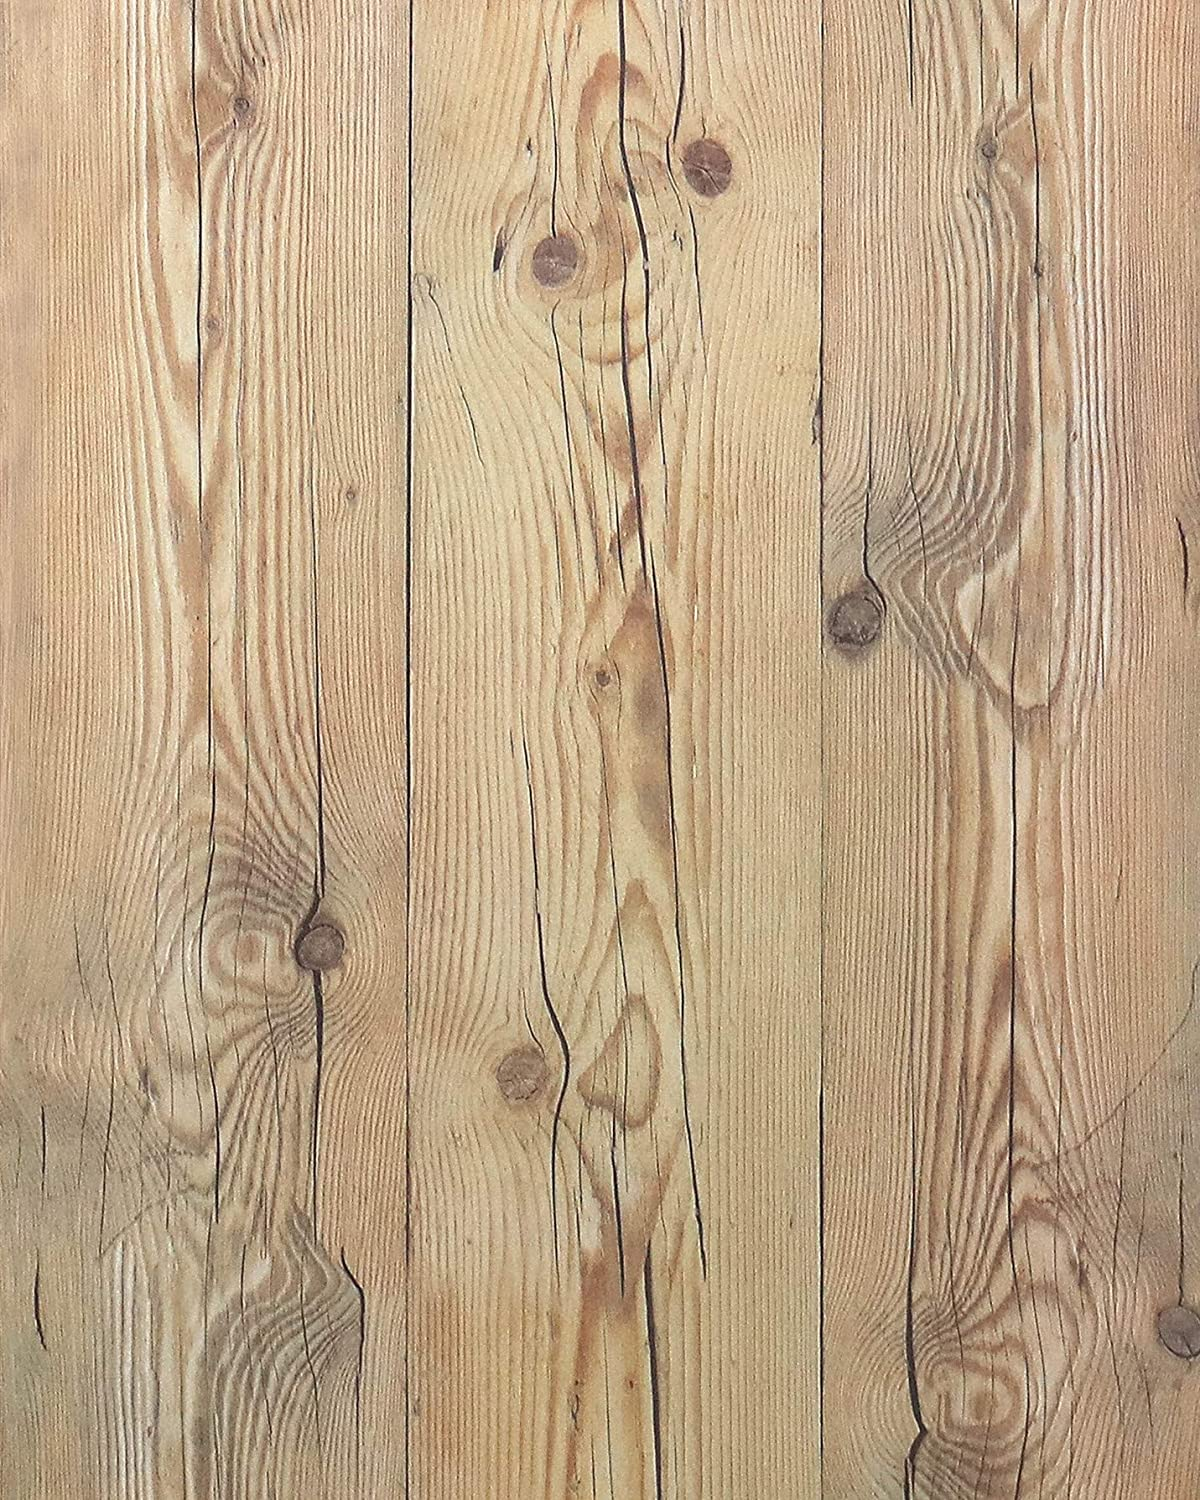 """Weathered Wood Wallpaper Stick and Peel Wood Con-Paper Wood Plank Wallpaper Self Adhesive Wallpaper Removable Wallpaper Wood Look Wallpaper Rustic Reclaimed Distressed Wood Wallpaper 78.7""""x17.7"""""""